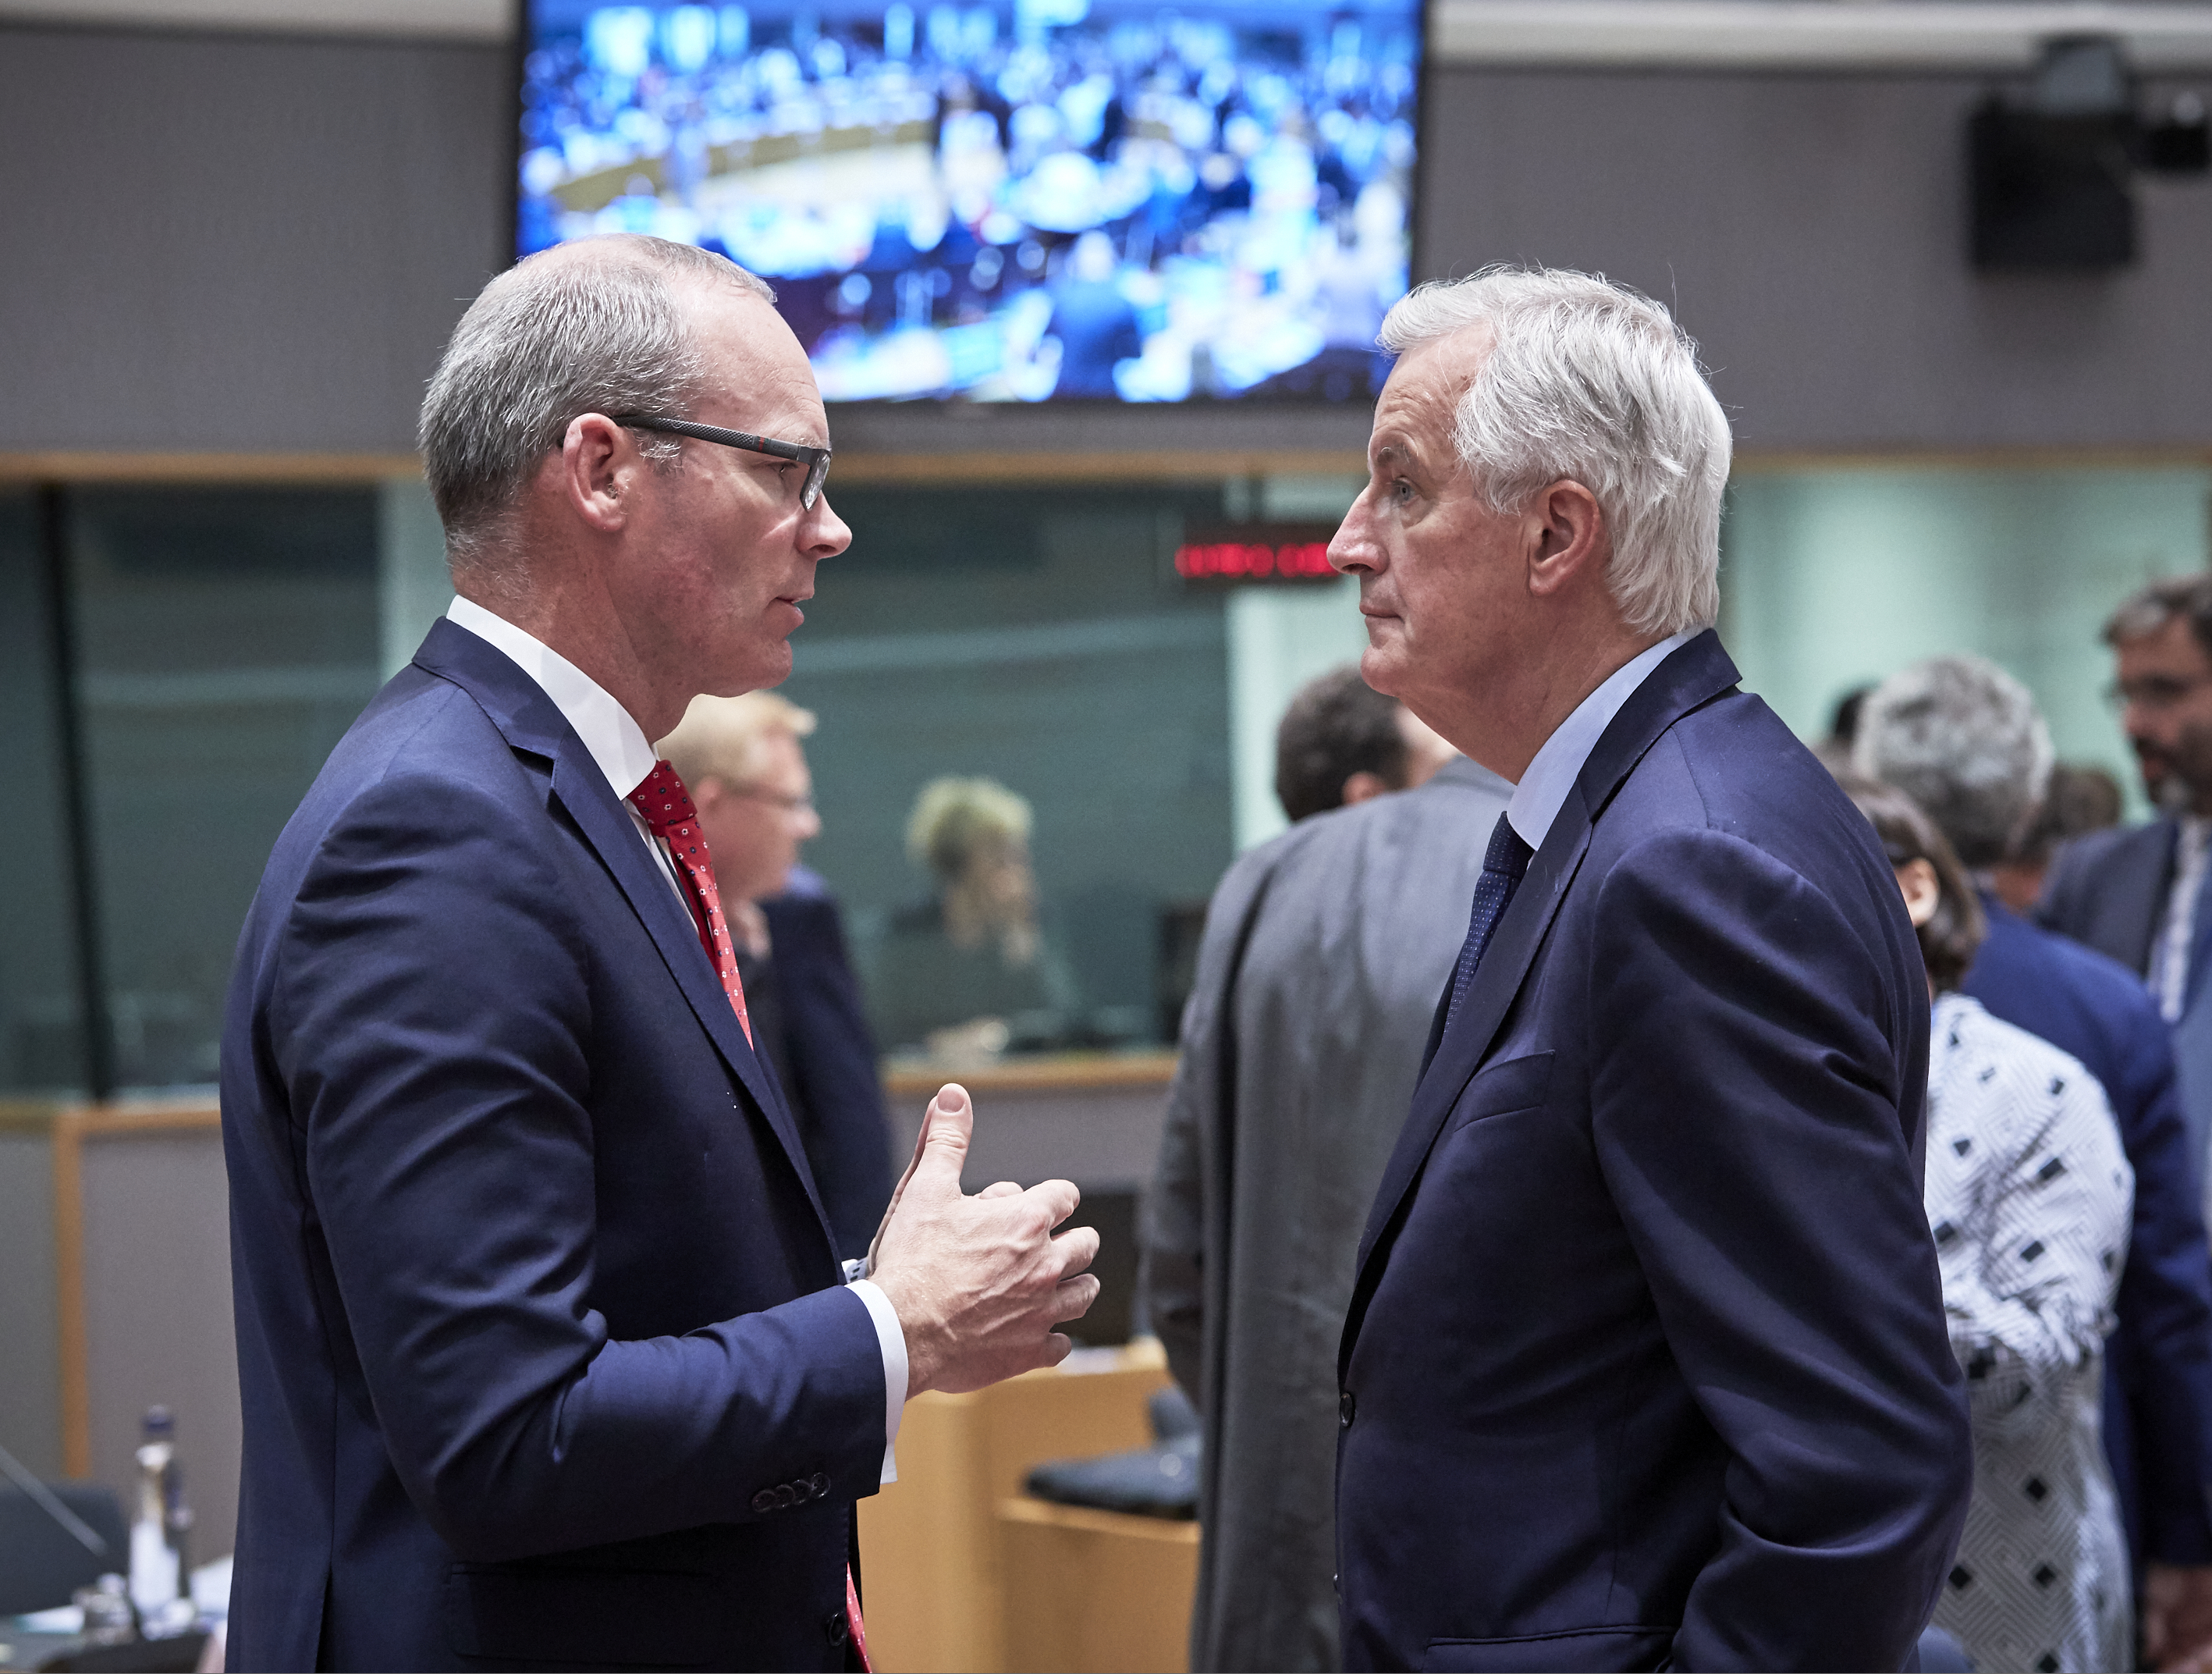 Barnier issued with NO DEAL WARNING: 'Britain will thrive, whatever happens!'